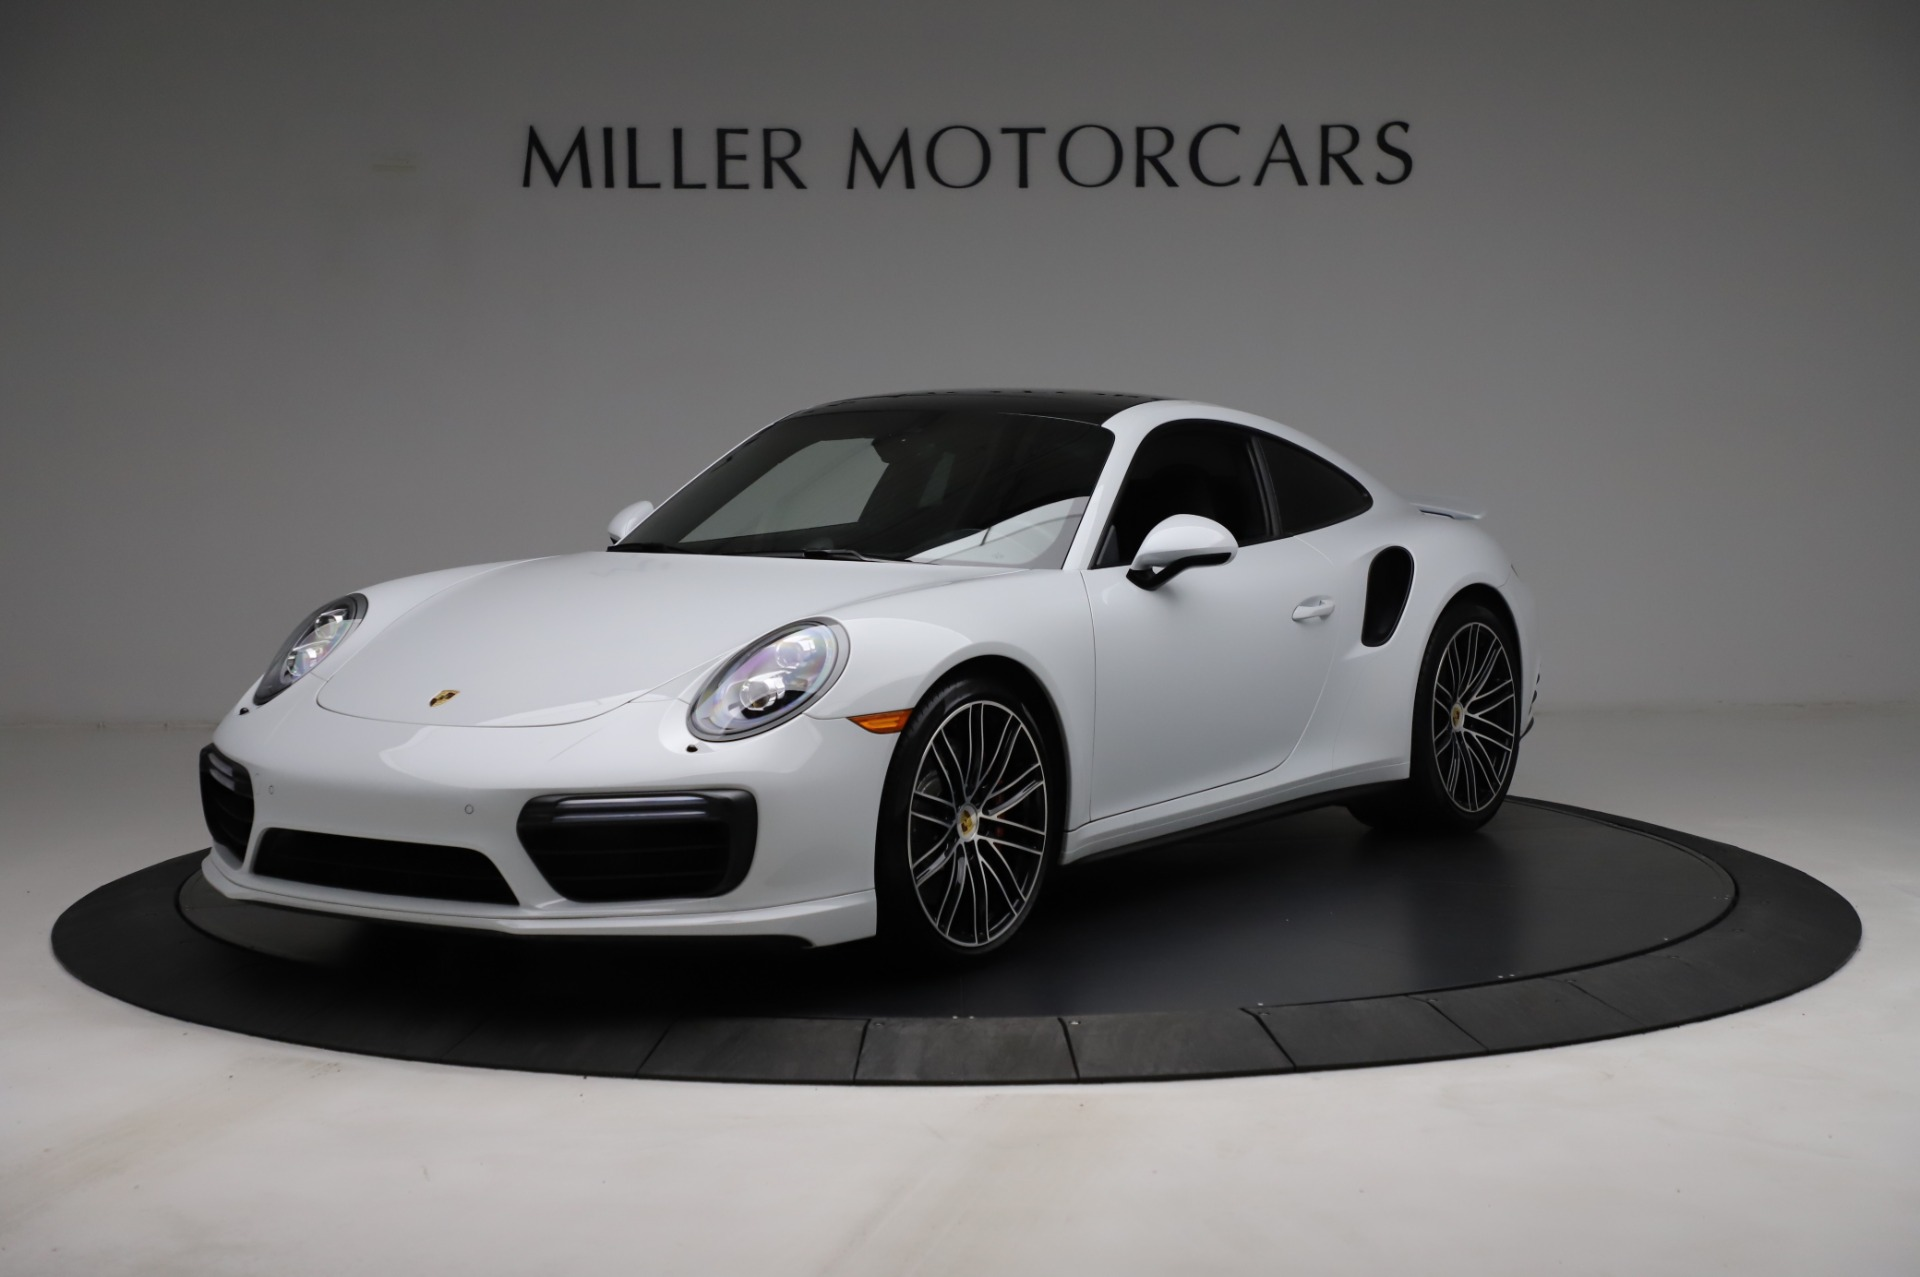 Used 2018 Porsche 911 Turbo for sale Sold at Aston Martin of Greenwich in Greenwich CT 06830 1